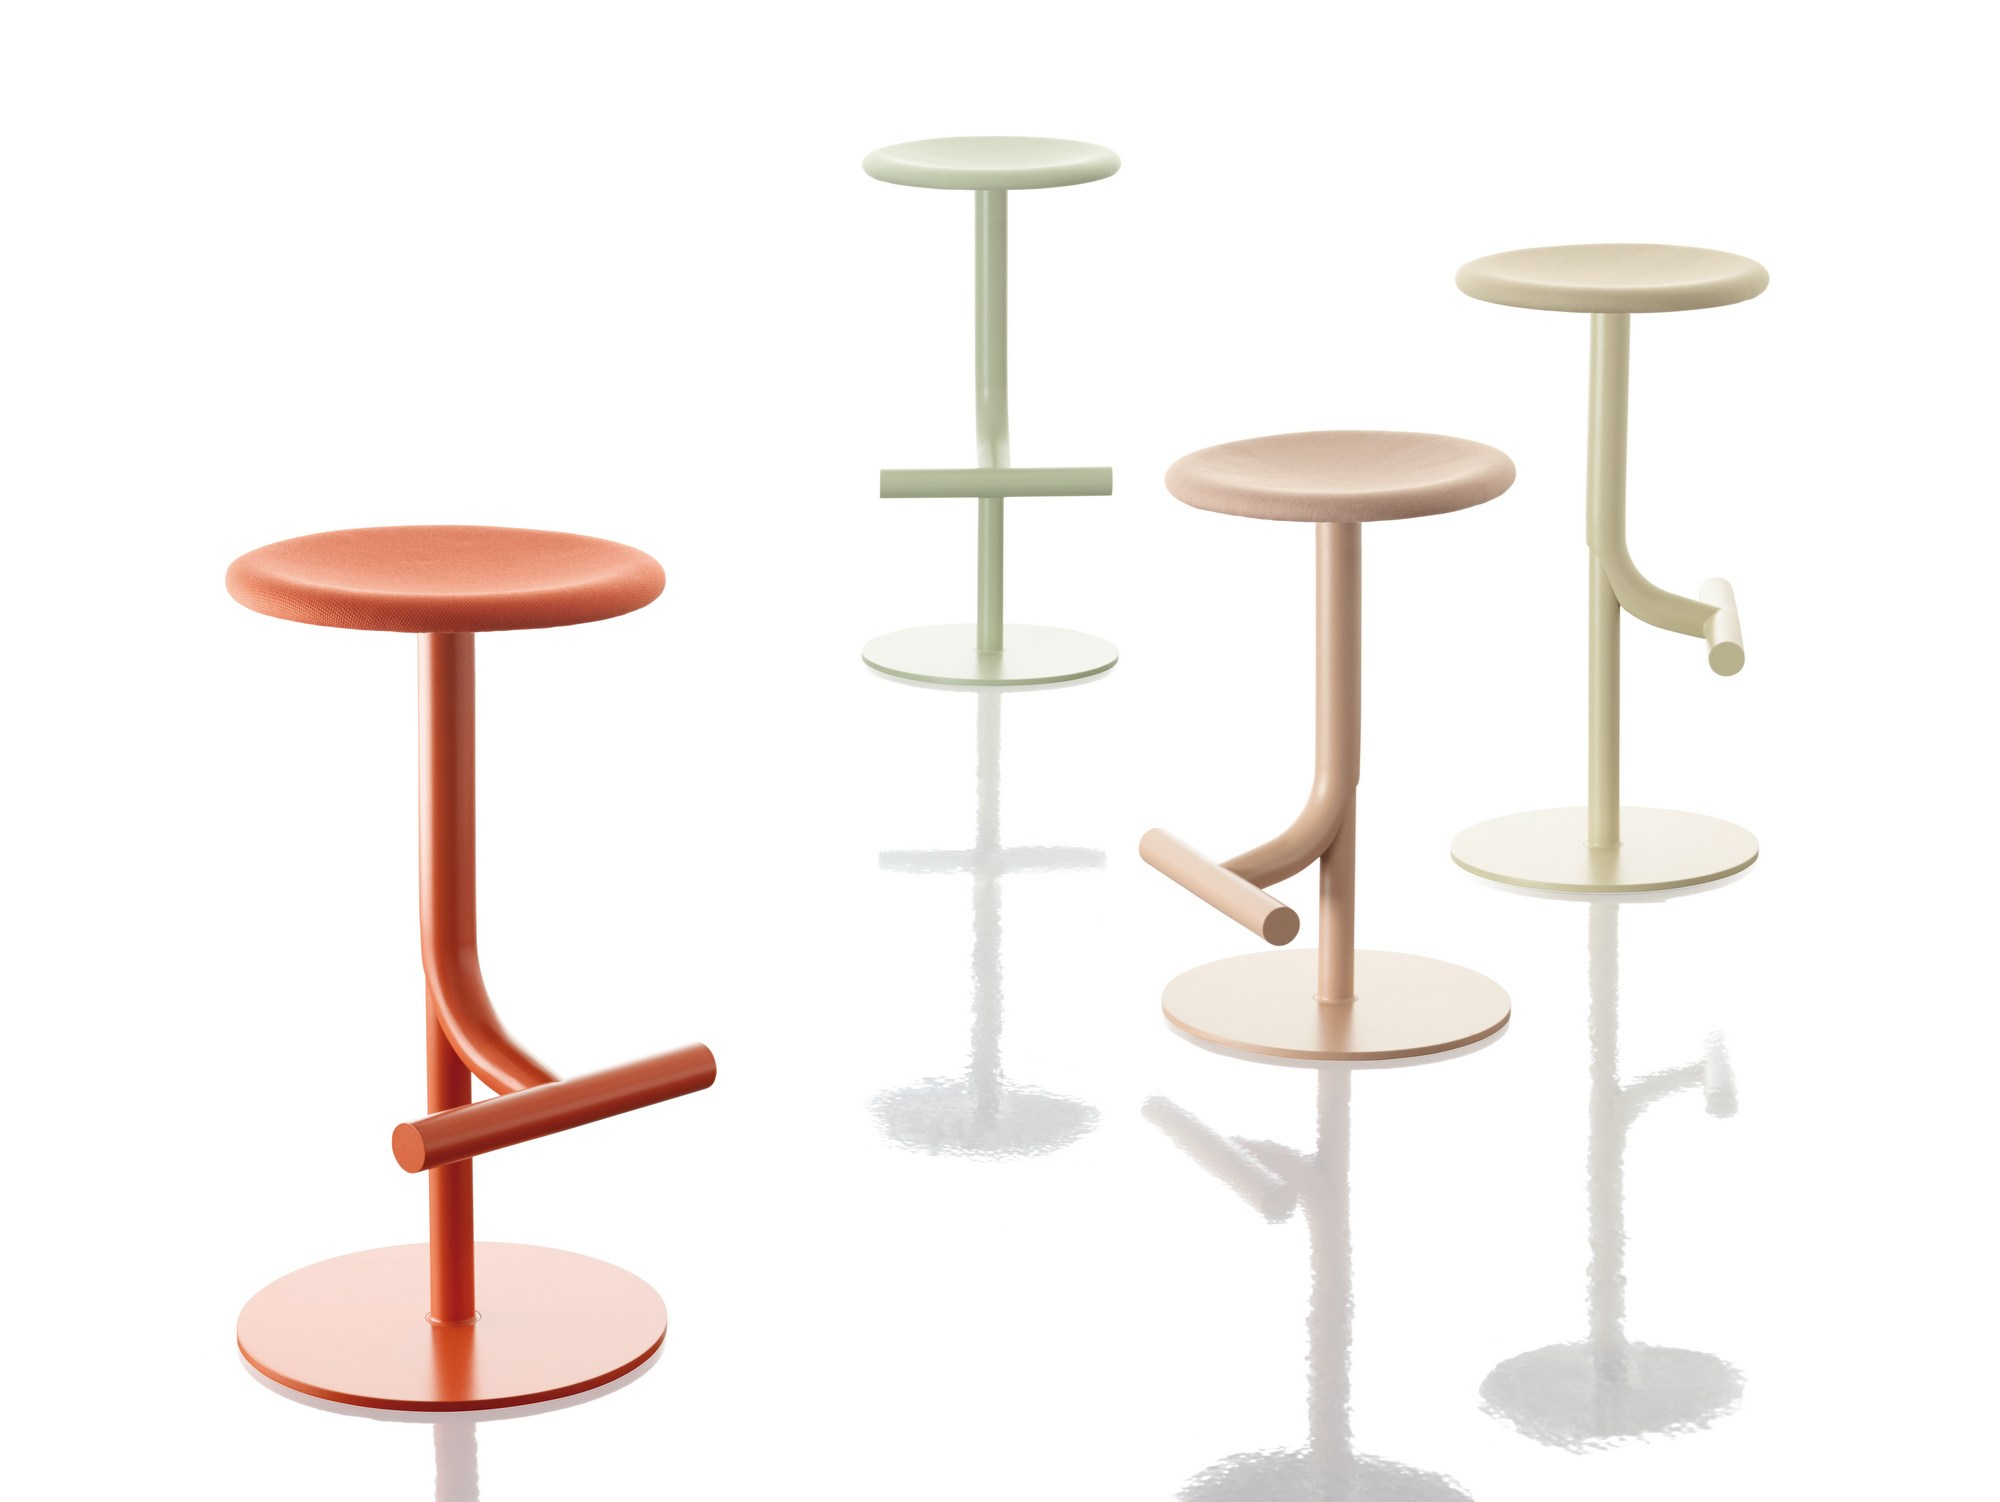 Swivel Stool With Gas Lift S.S.S.S. SWEET STAINLESS STEEL STOOL By Magis  Design Philippe Starck